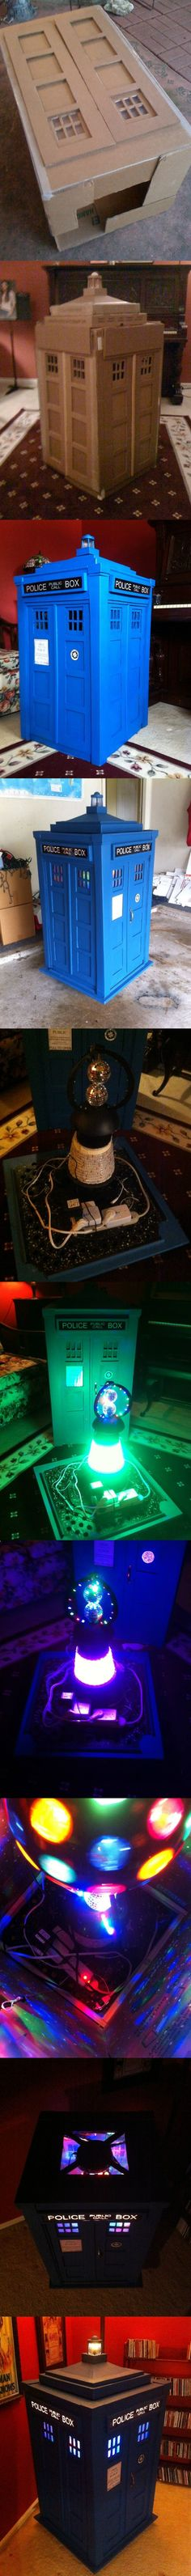 "Description: ""This ~ 1/3rd scale Tardis was constructed with primarly recycled cardboard boxes (Uhaul, FedEx, Pizza...) and is powered by wireless remote (Rotating disco balls, sound activated LEDs, fog machine) along with an internal Bluetooth speaker wirelessly connected to my iPhone/iPad... any audio from  my phone  goes through the Tardis... Essentially a Tardis Jukebox!"""